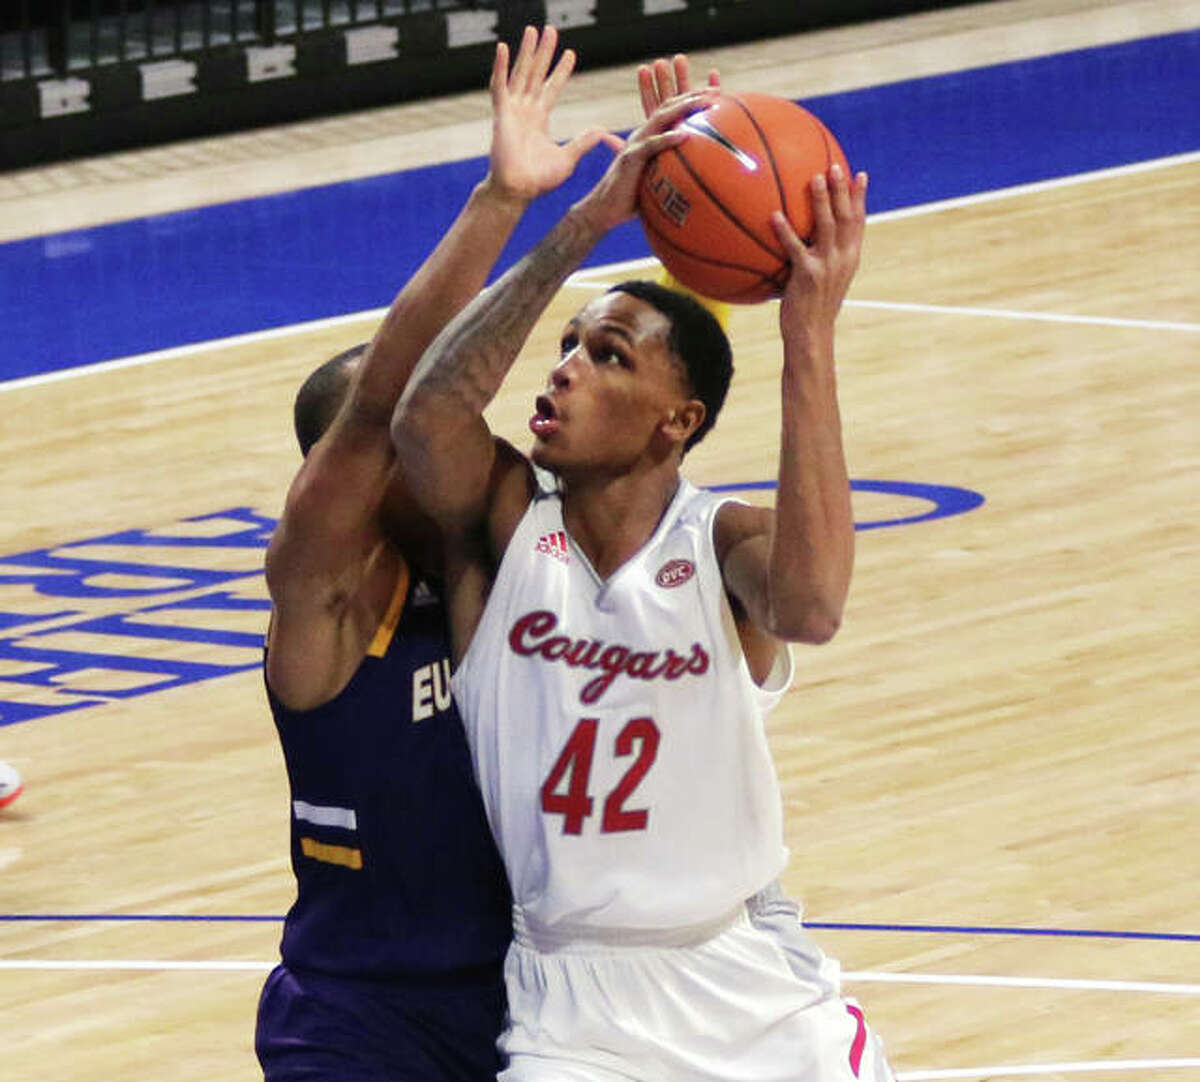 SIUE's Shamar Wright (42) goes to the basket against a UHSP defender in a Nov. 28 game at Chaifetz Arena in St. Louis. Wright had nine points Saturday in Nashville, where the Cougars lost to Belmont 114-62.